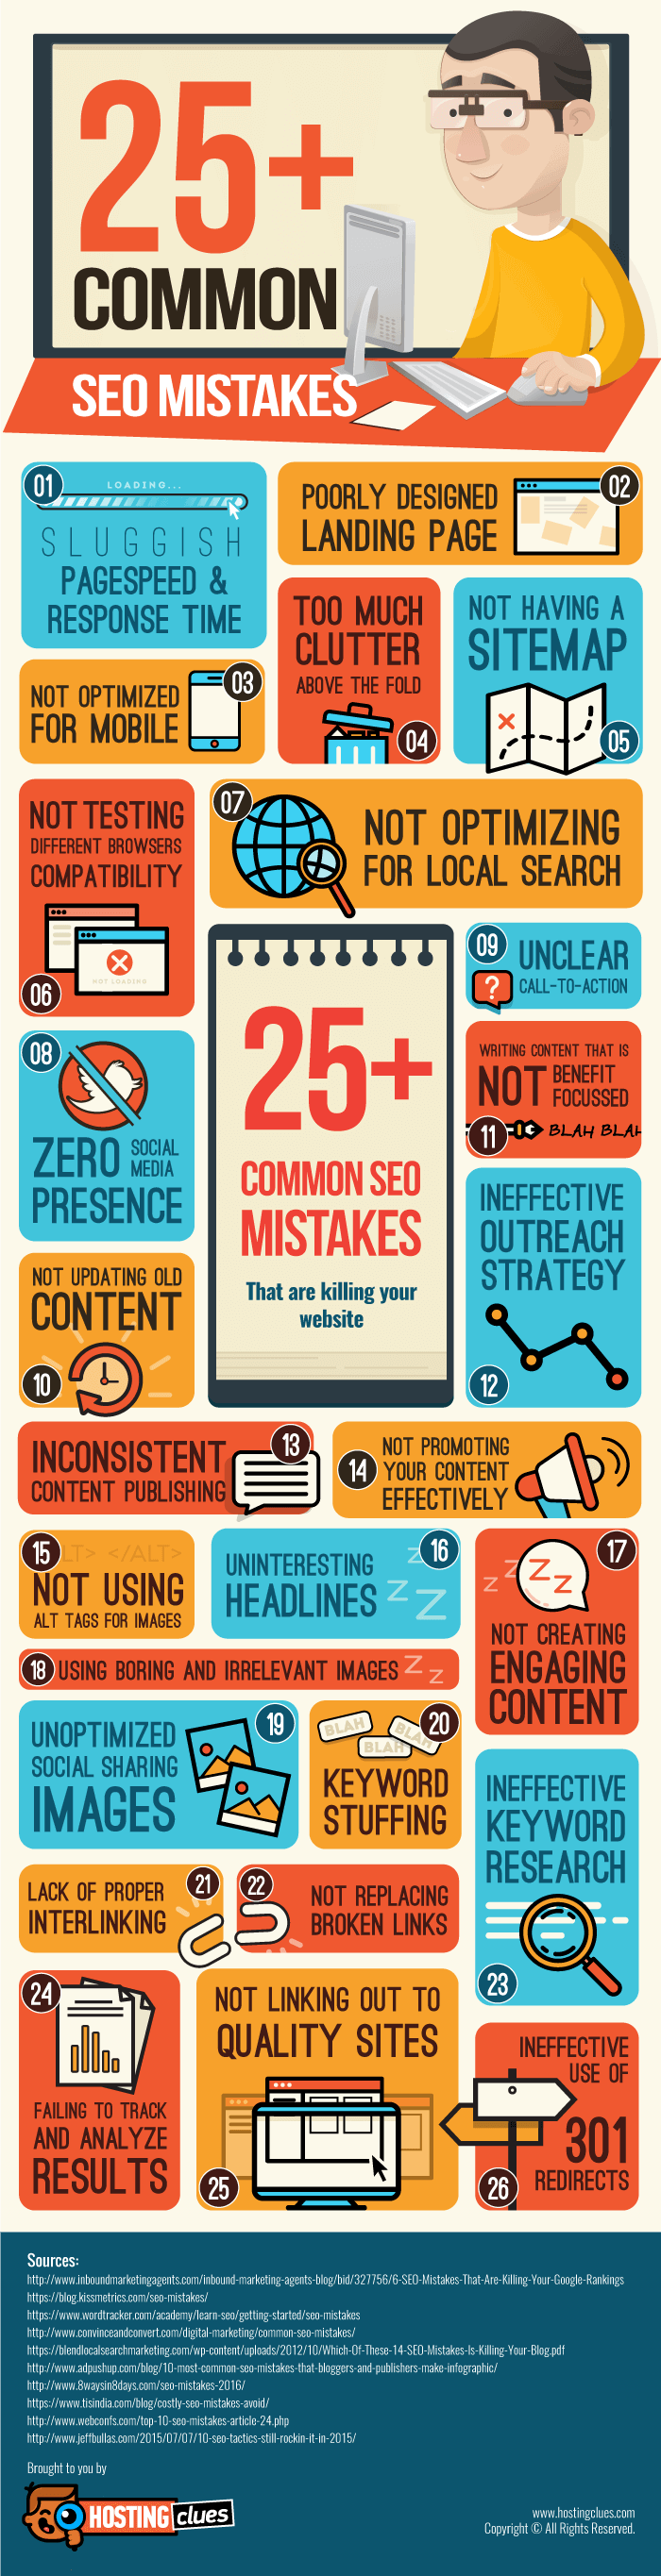 [Infographic] 25+ Common Seo Mistakes That Are Killing Your Website 2